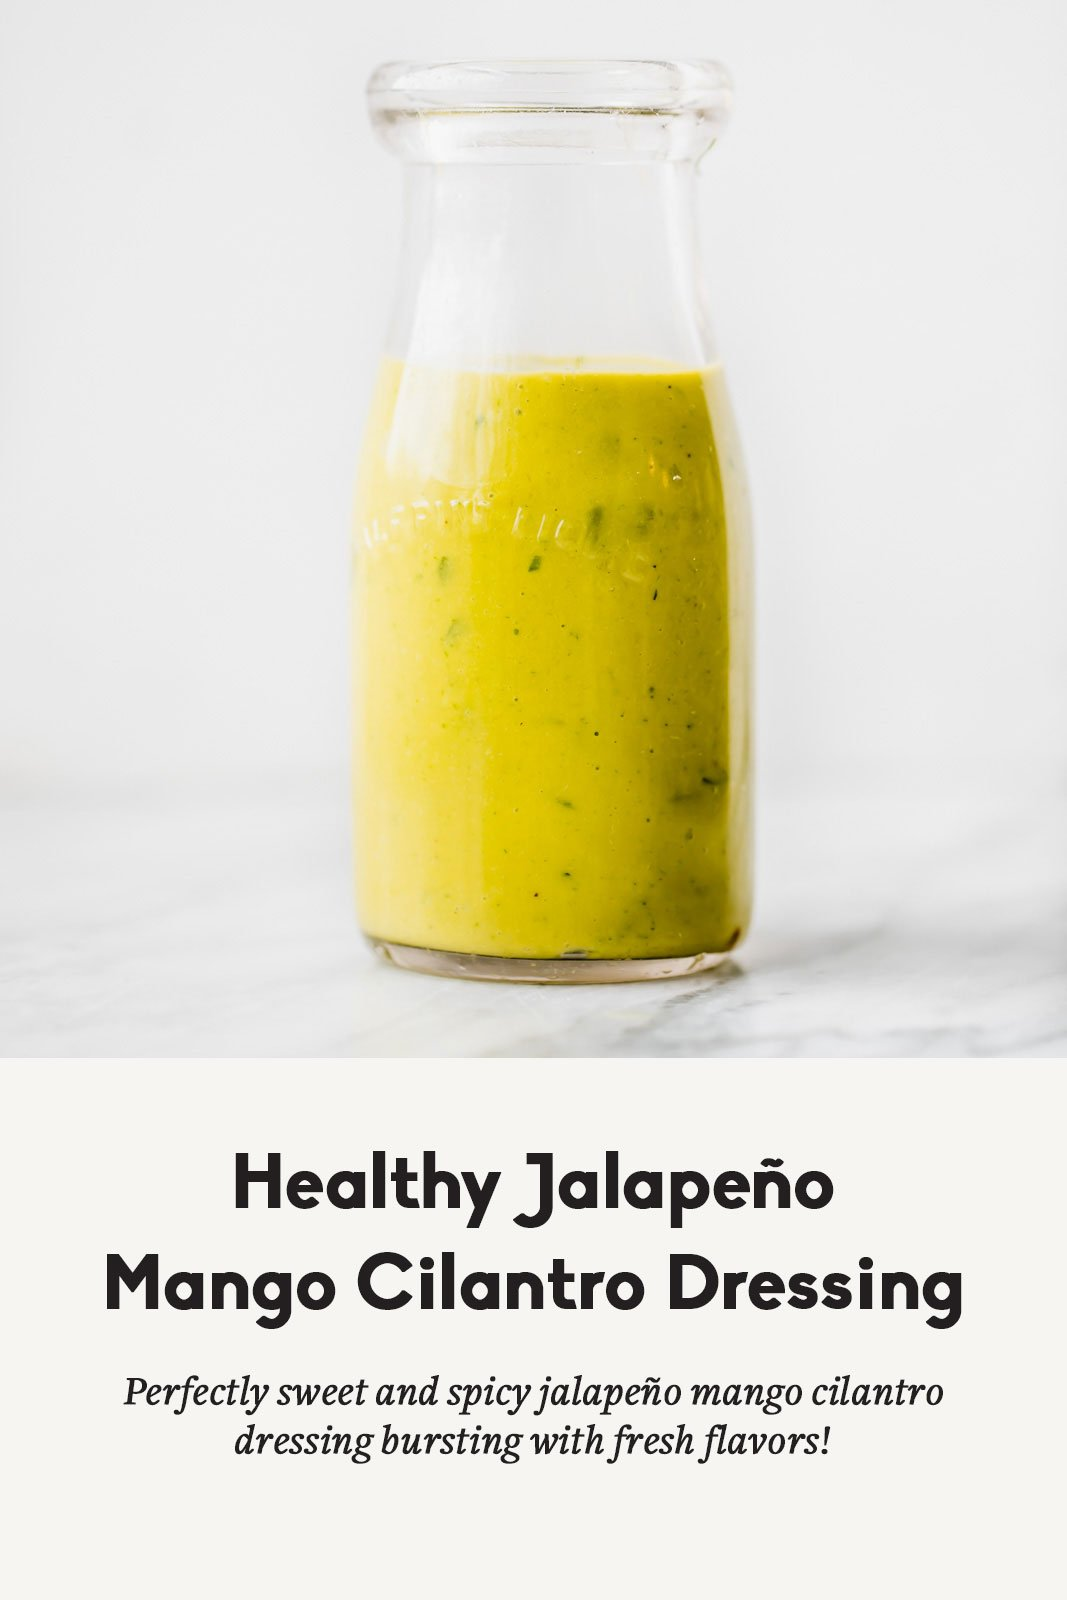 bottle of healthy jalapeno mango cilantro dressing